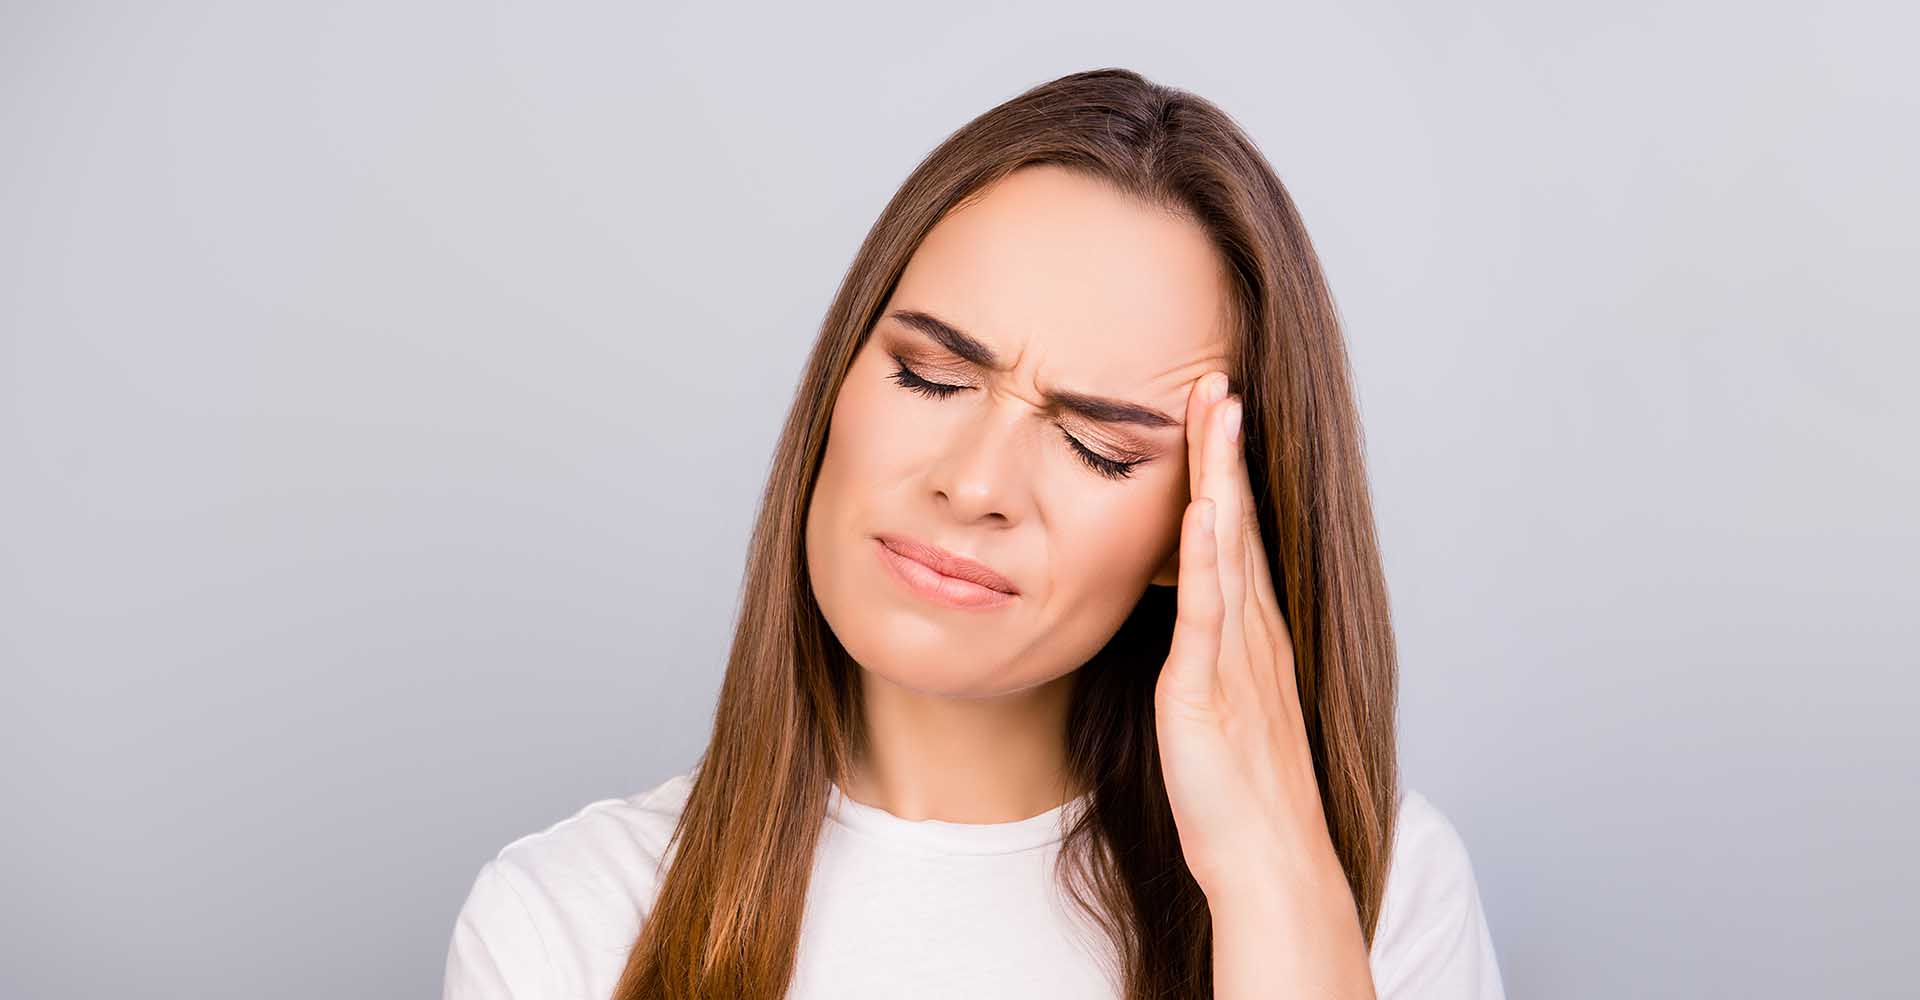 Beautiful woman suffering from strong migraine pressing her temple with her fingers